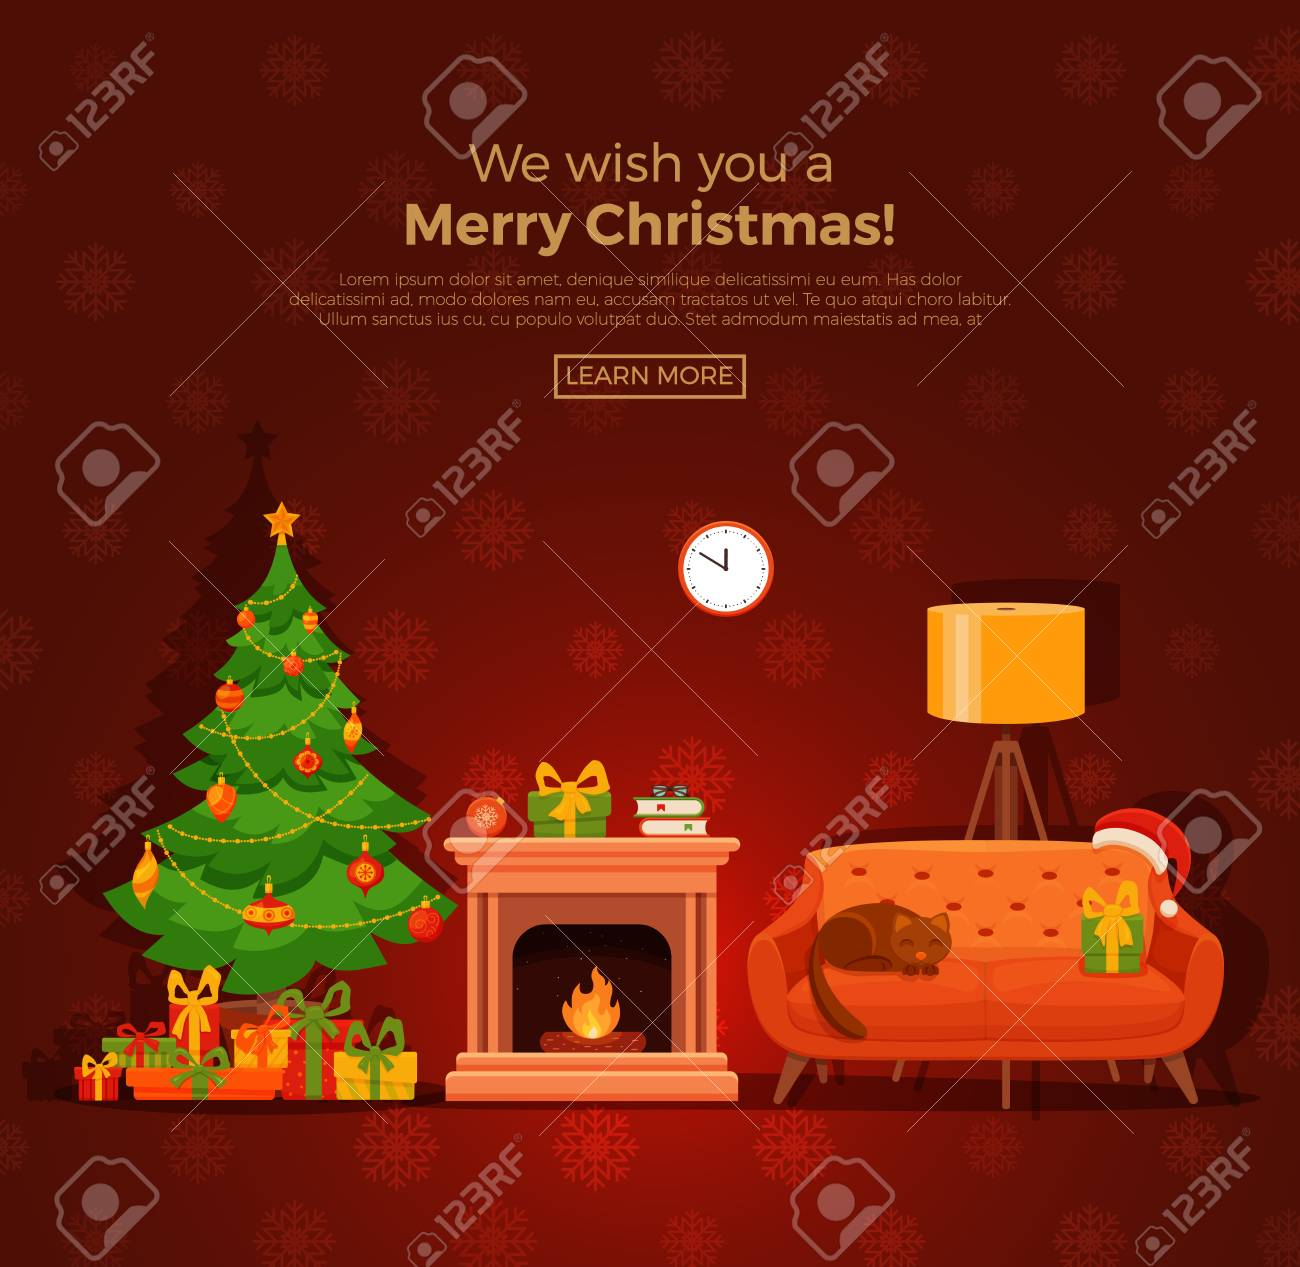 Christmas Fire Place.Christmas Fireplace Room Interior In Colorful Cartoon Flat Style